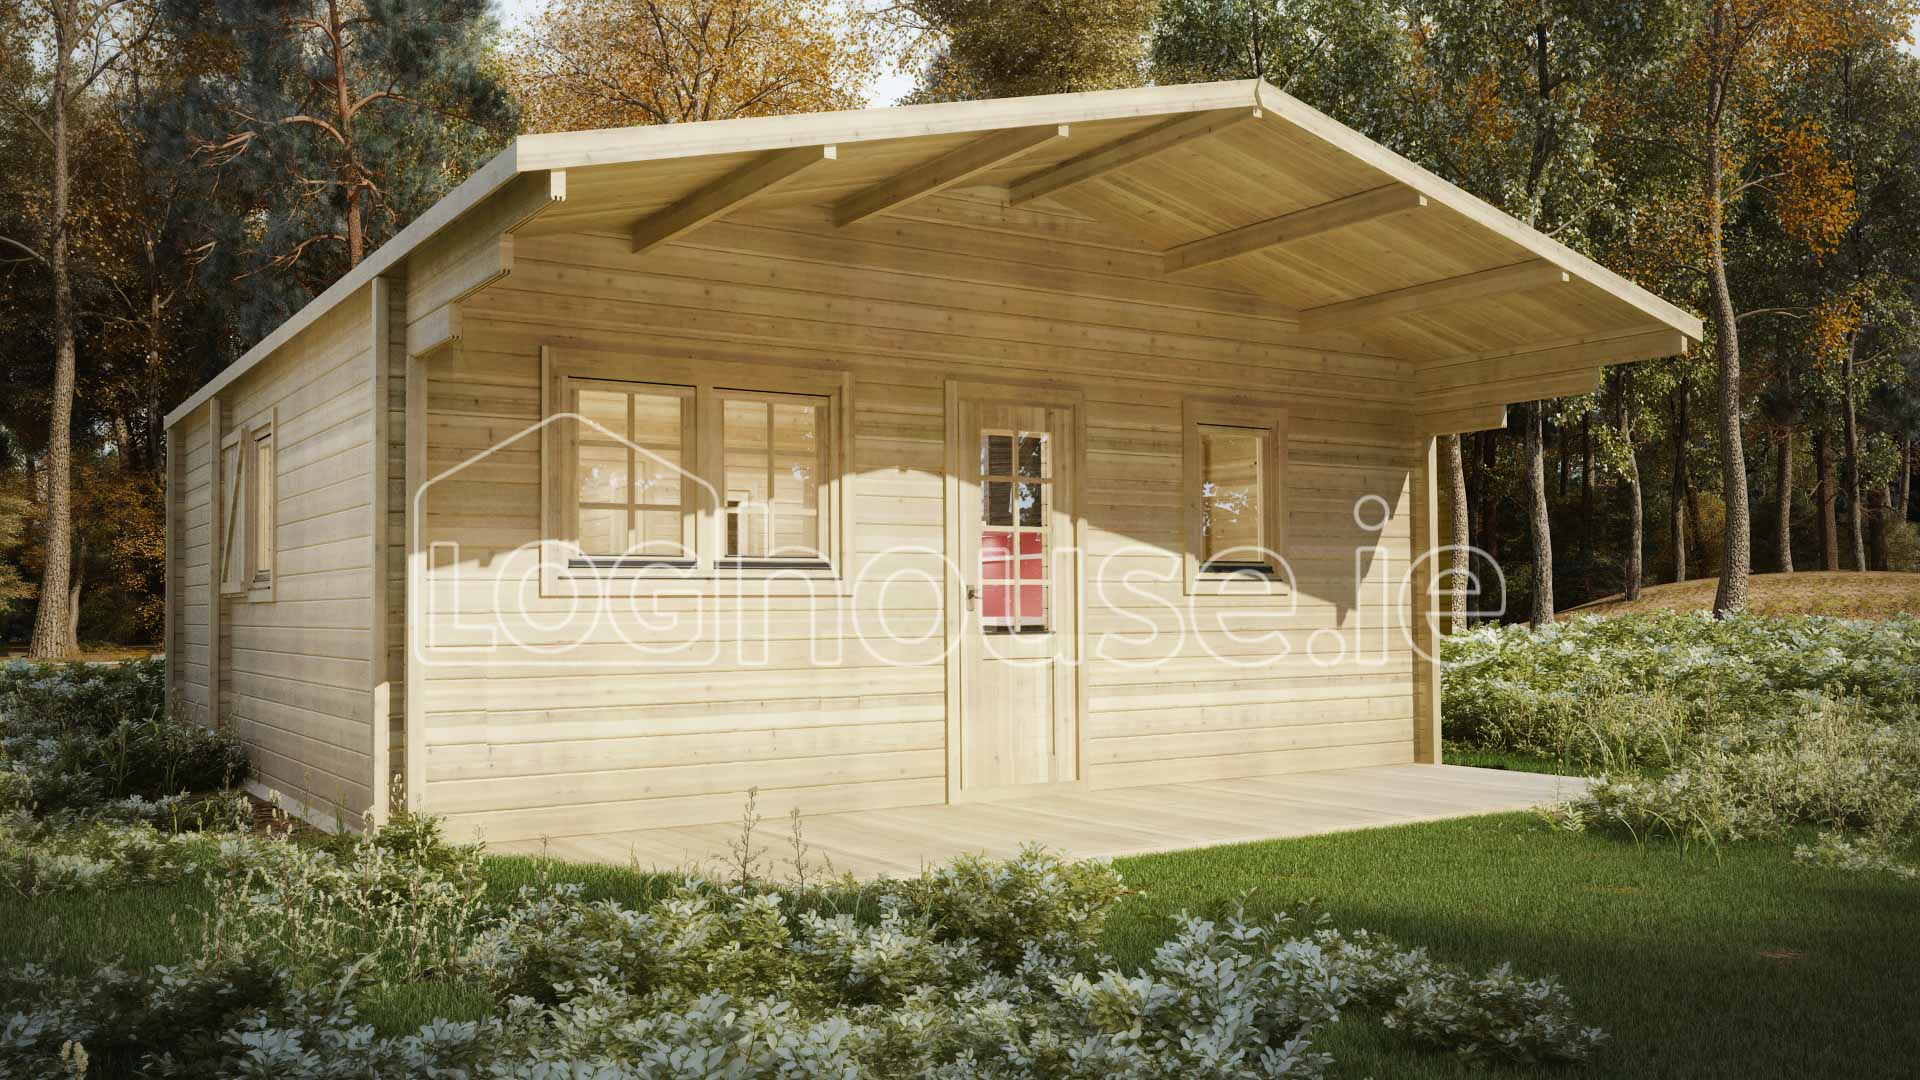 Eco two bed b log cabin 6m x 6m for 2 bed log cabins for sale